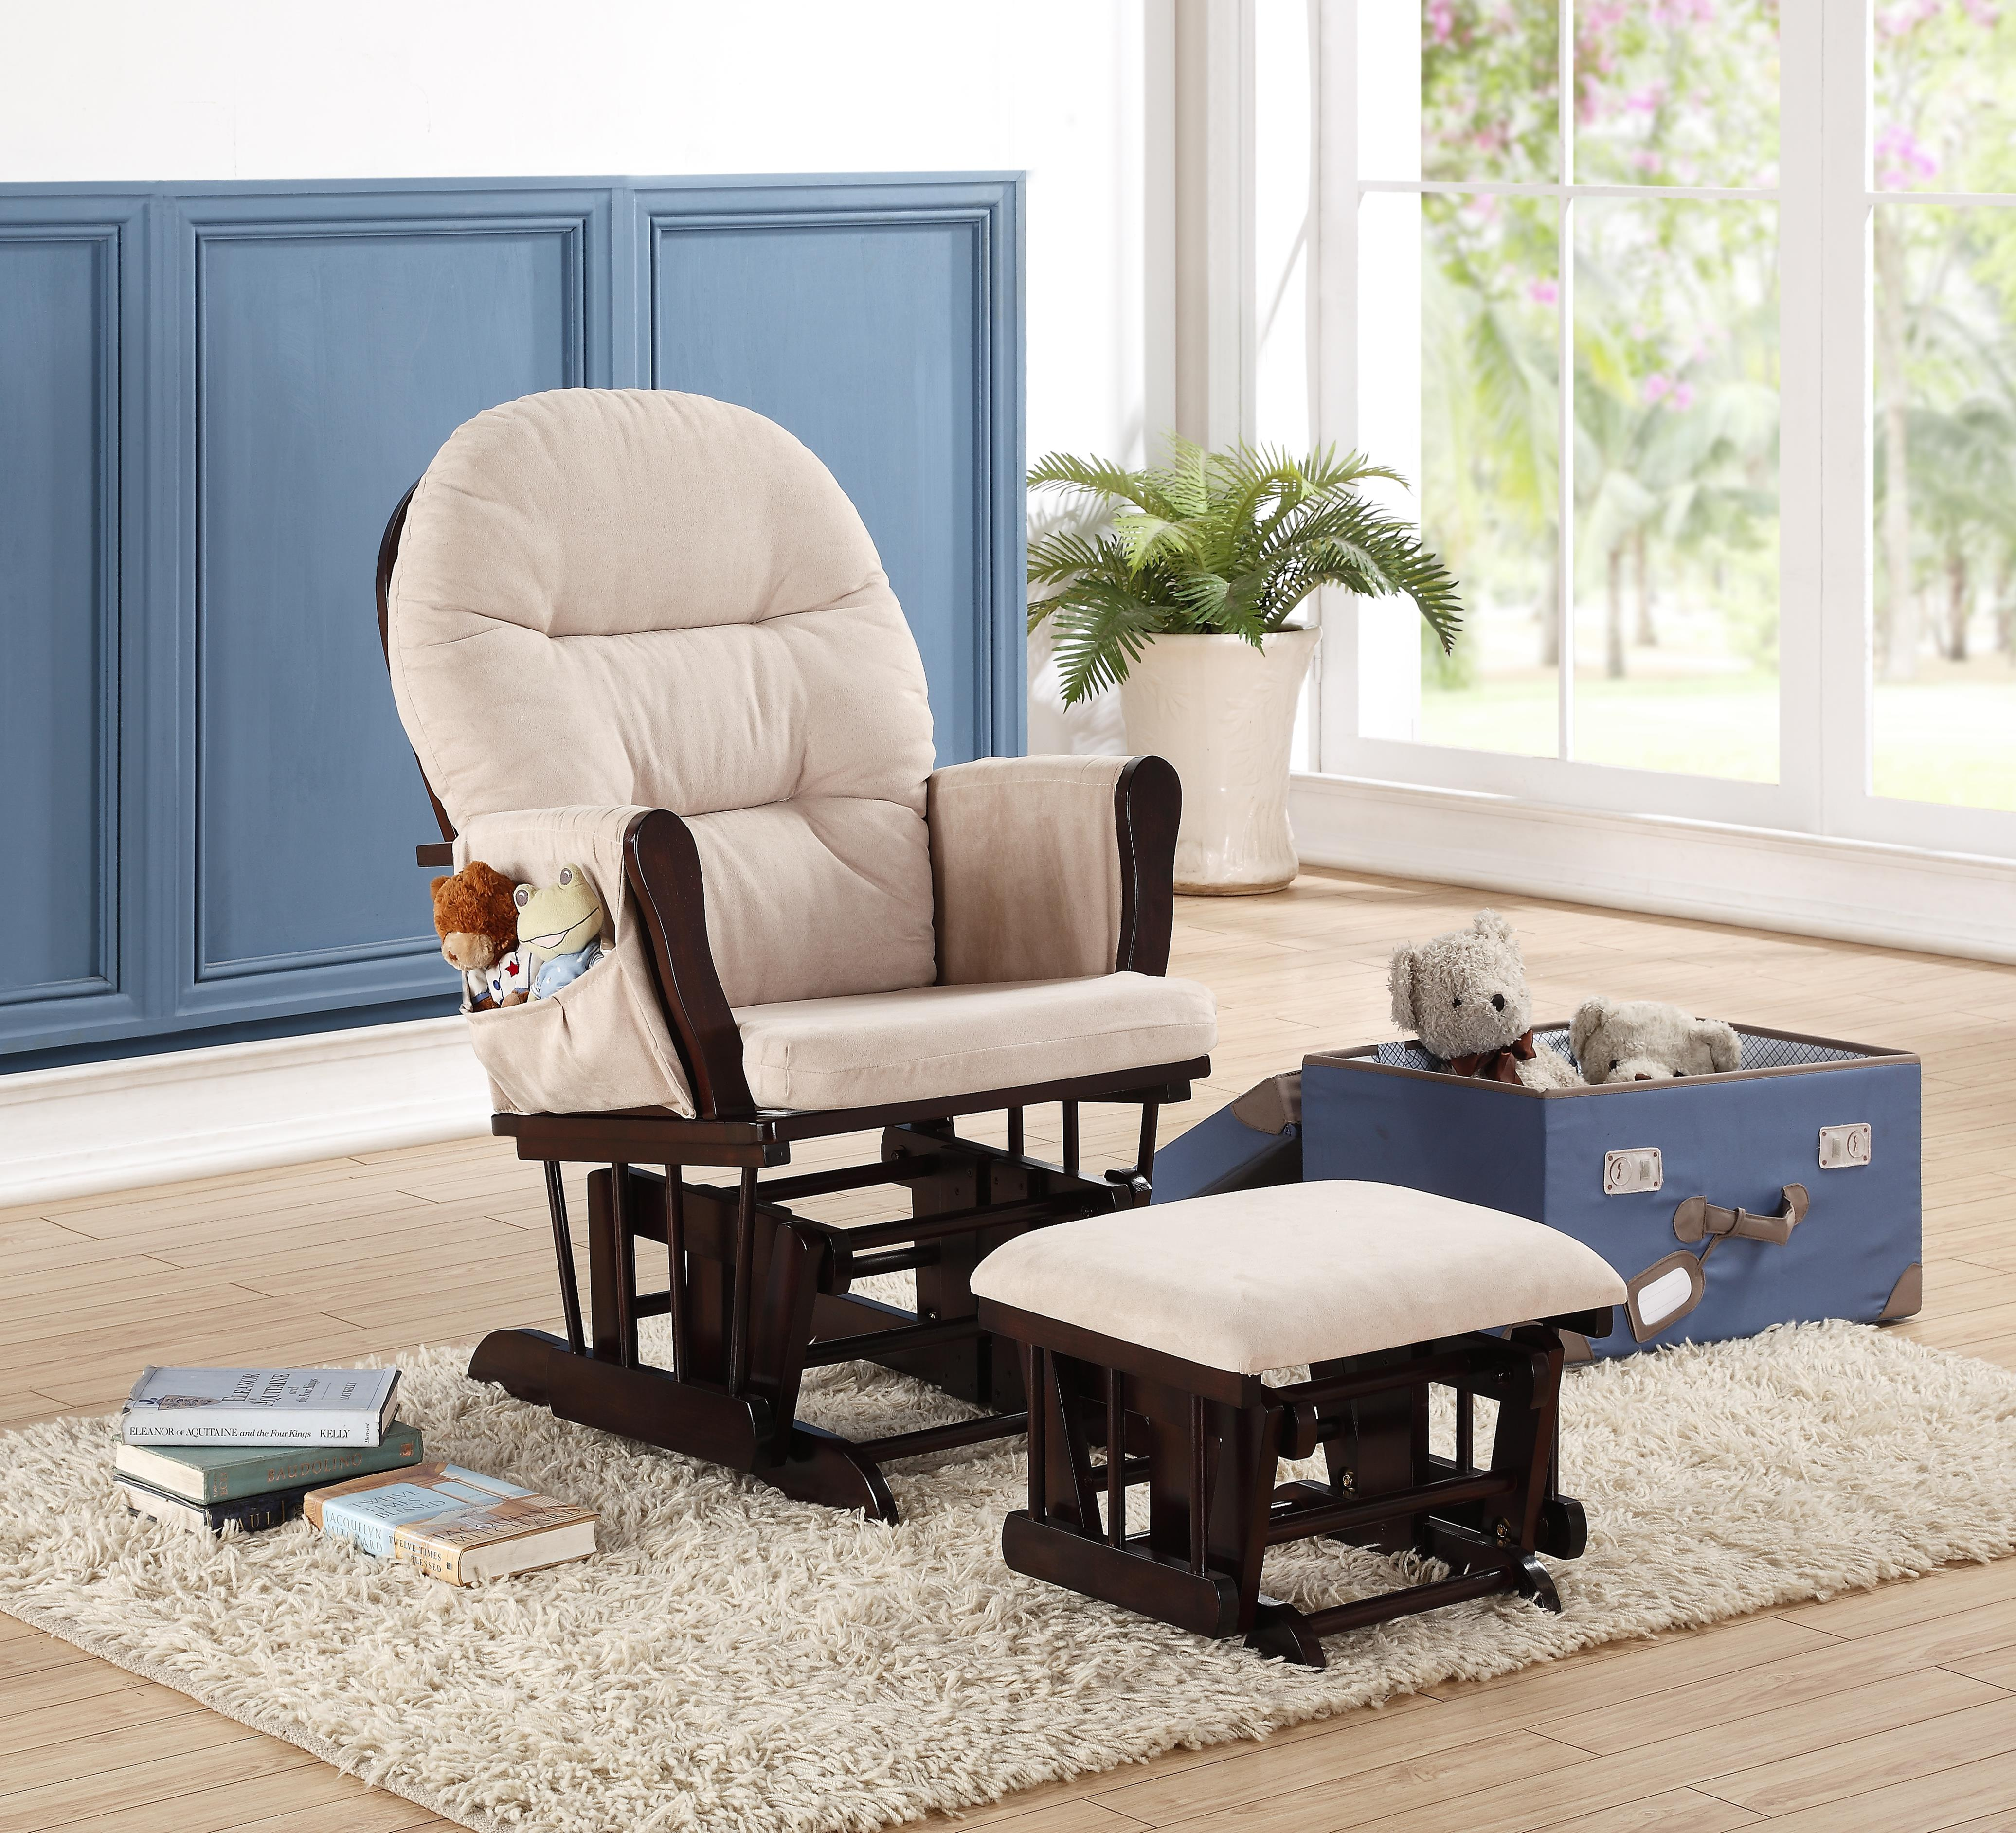 Naomi Home Brisbane Glider & Ottoman Set-Cushion Color:Cream,Finish:Espresso